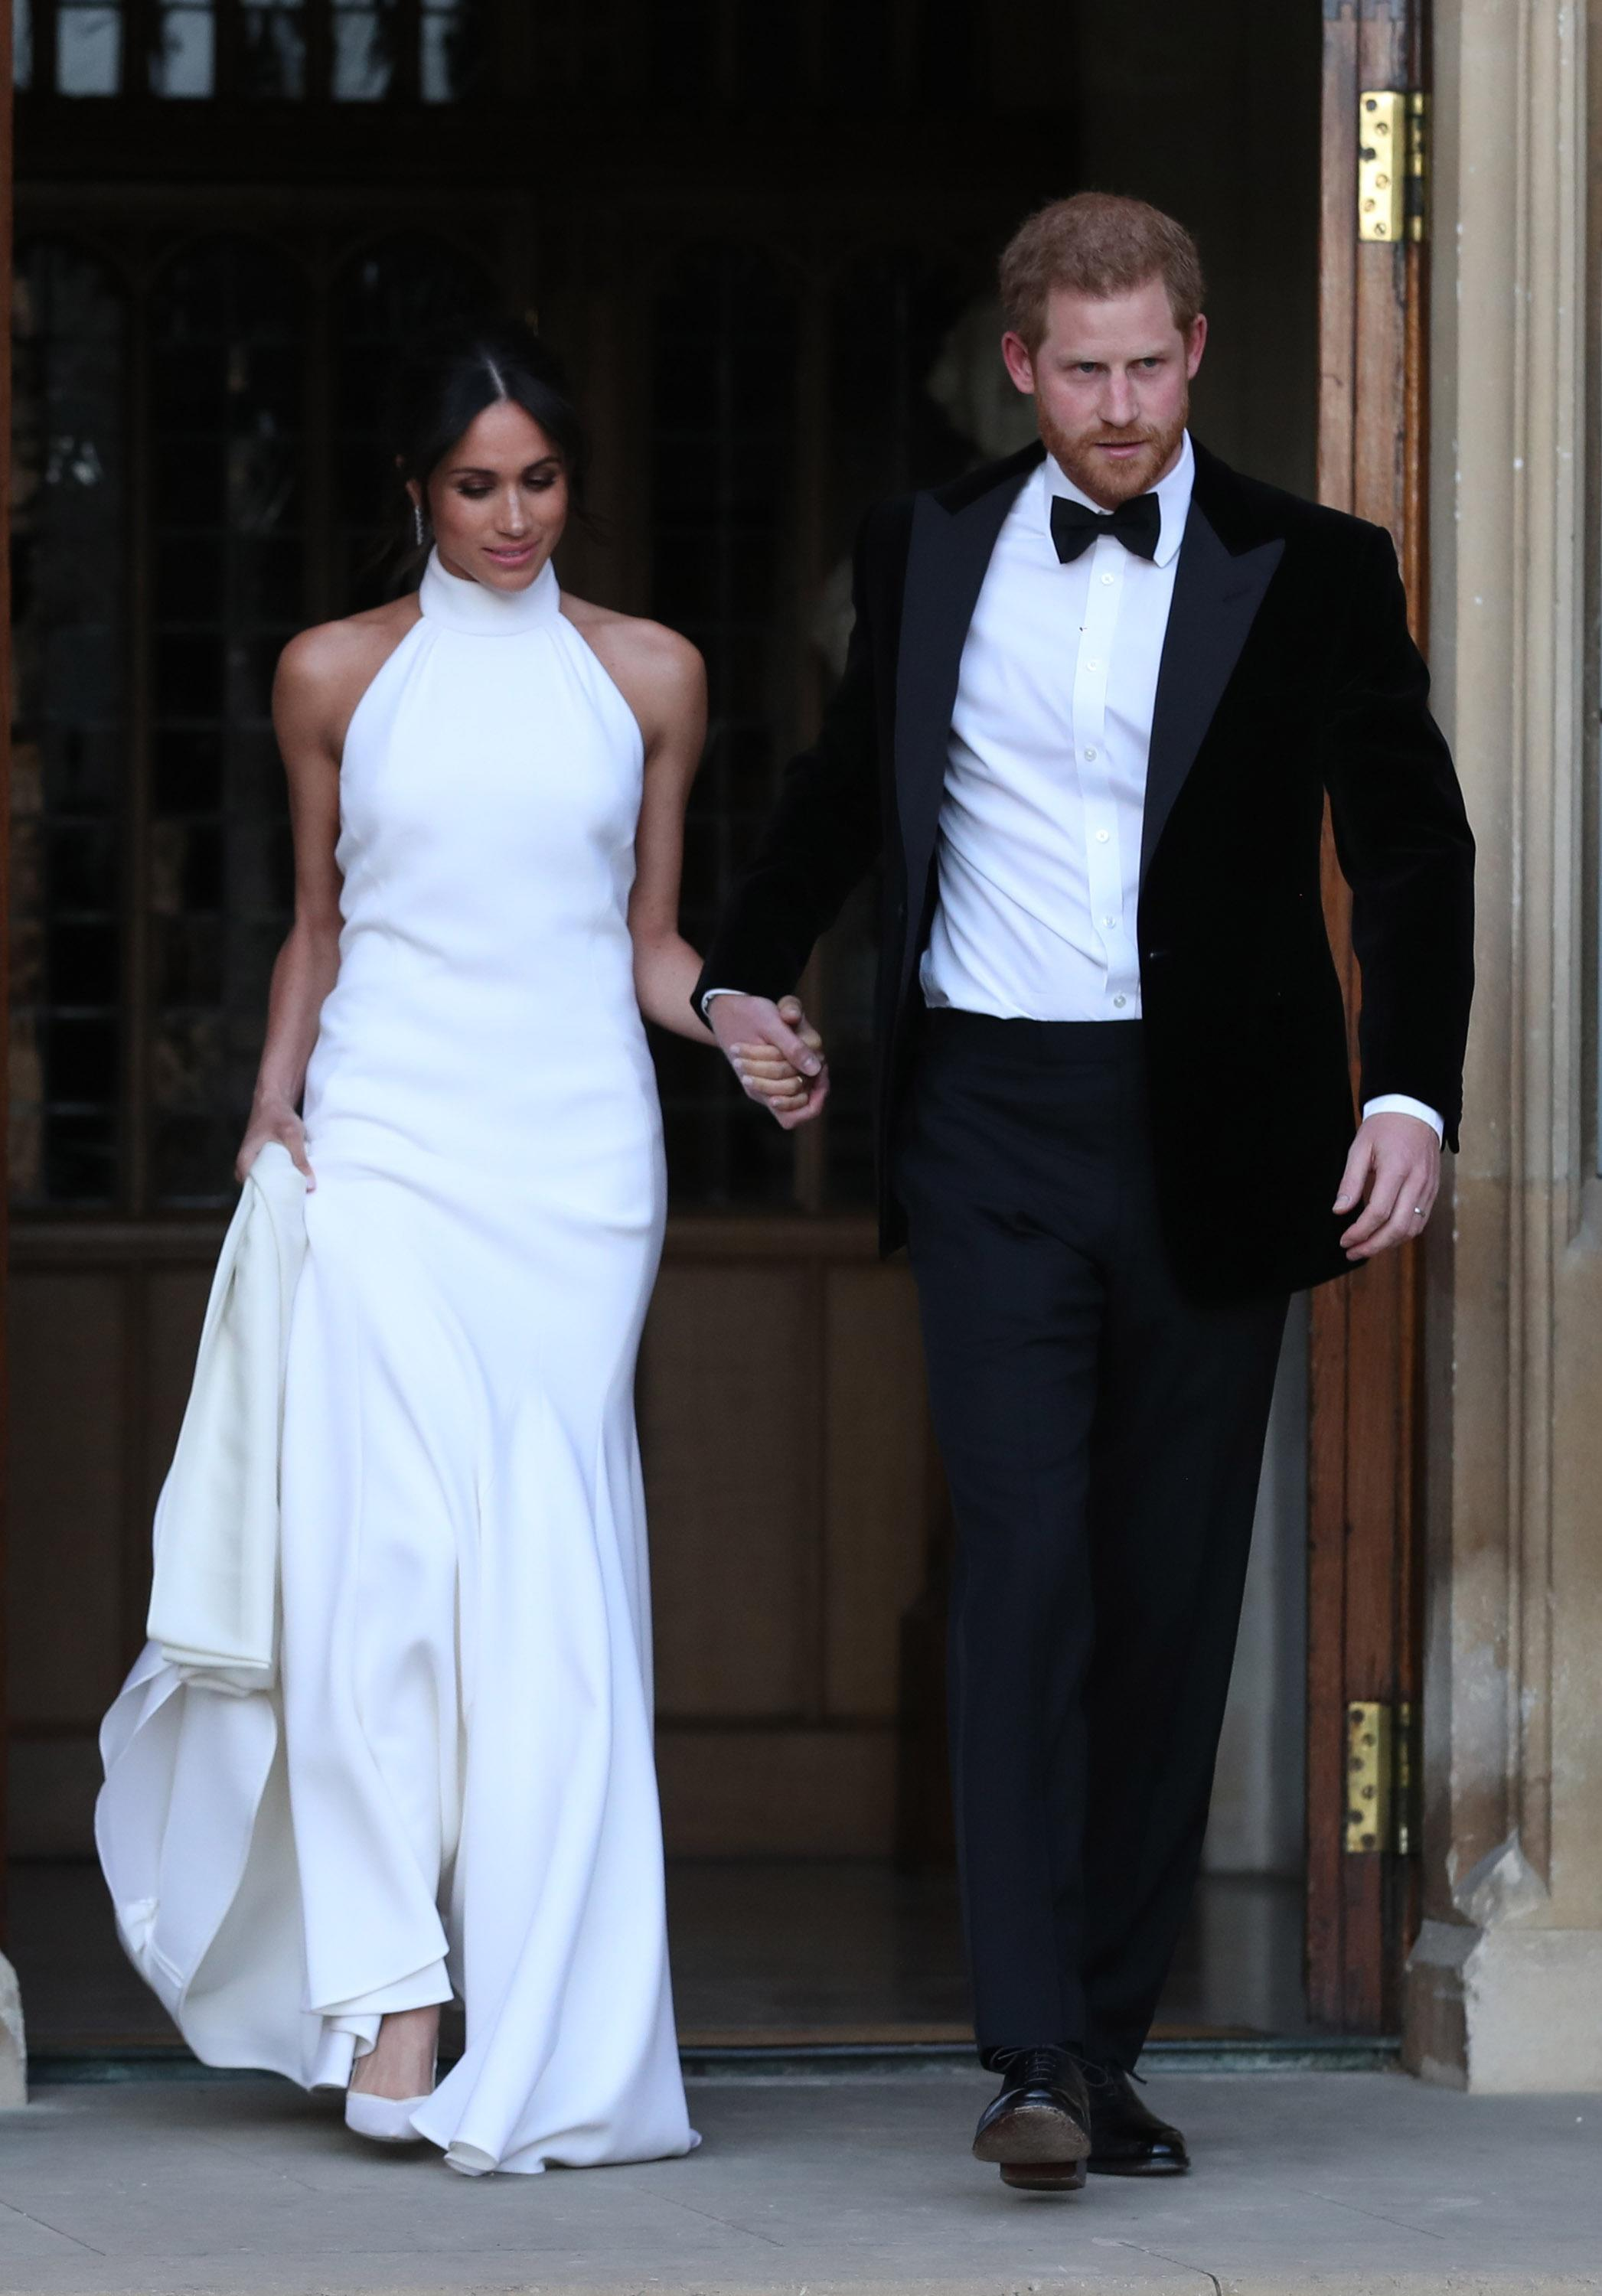 Stella McCartney says Meghan Markle's wedding dress was her last chance to 'reflect the joy and the human within her'